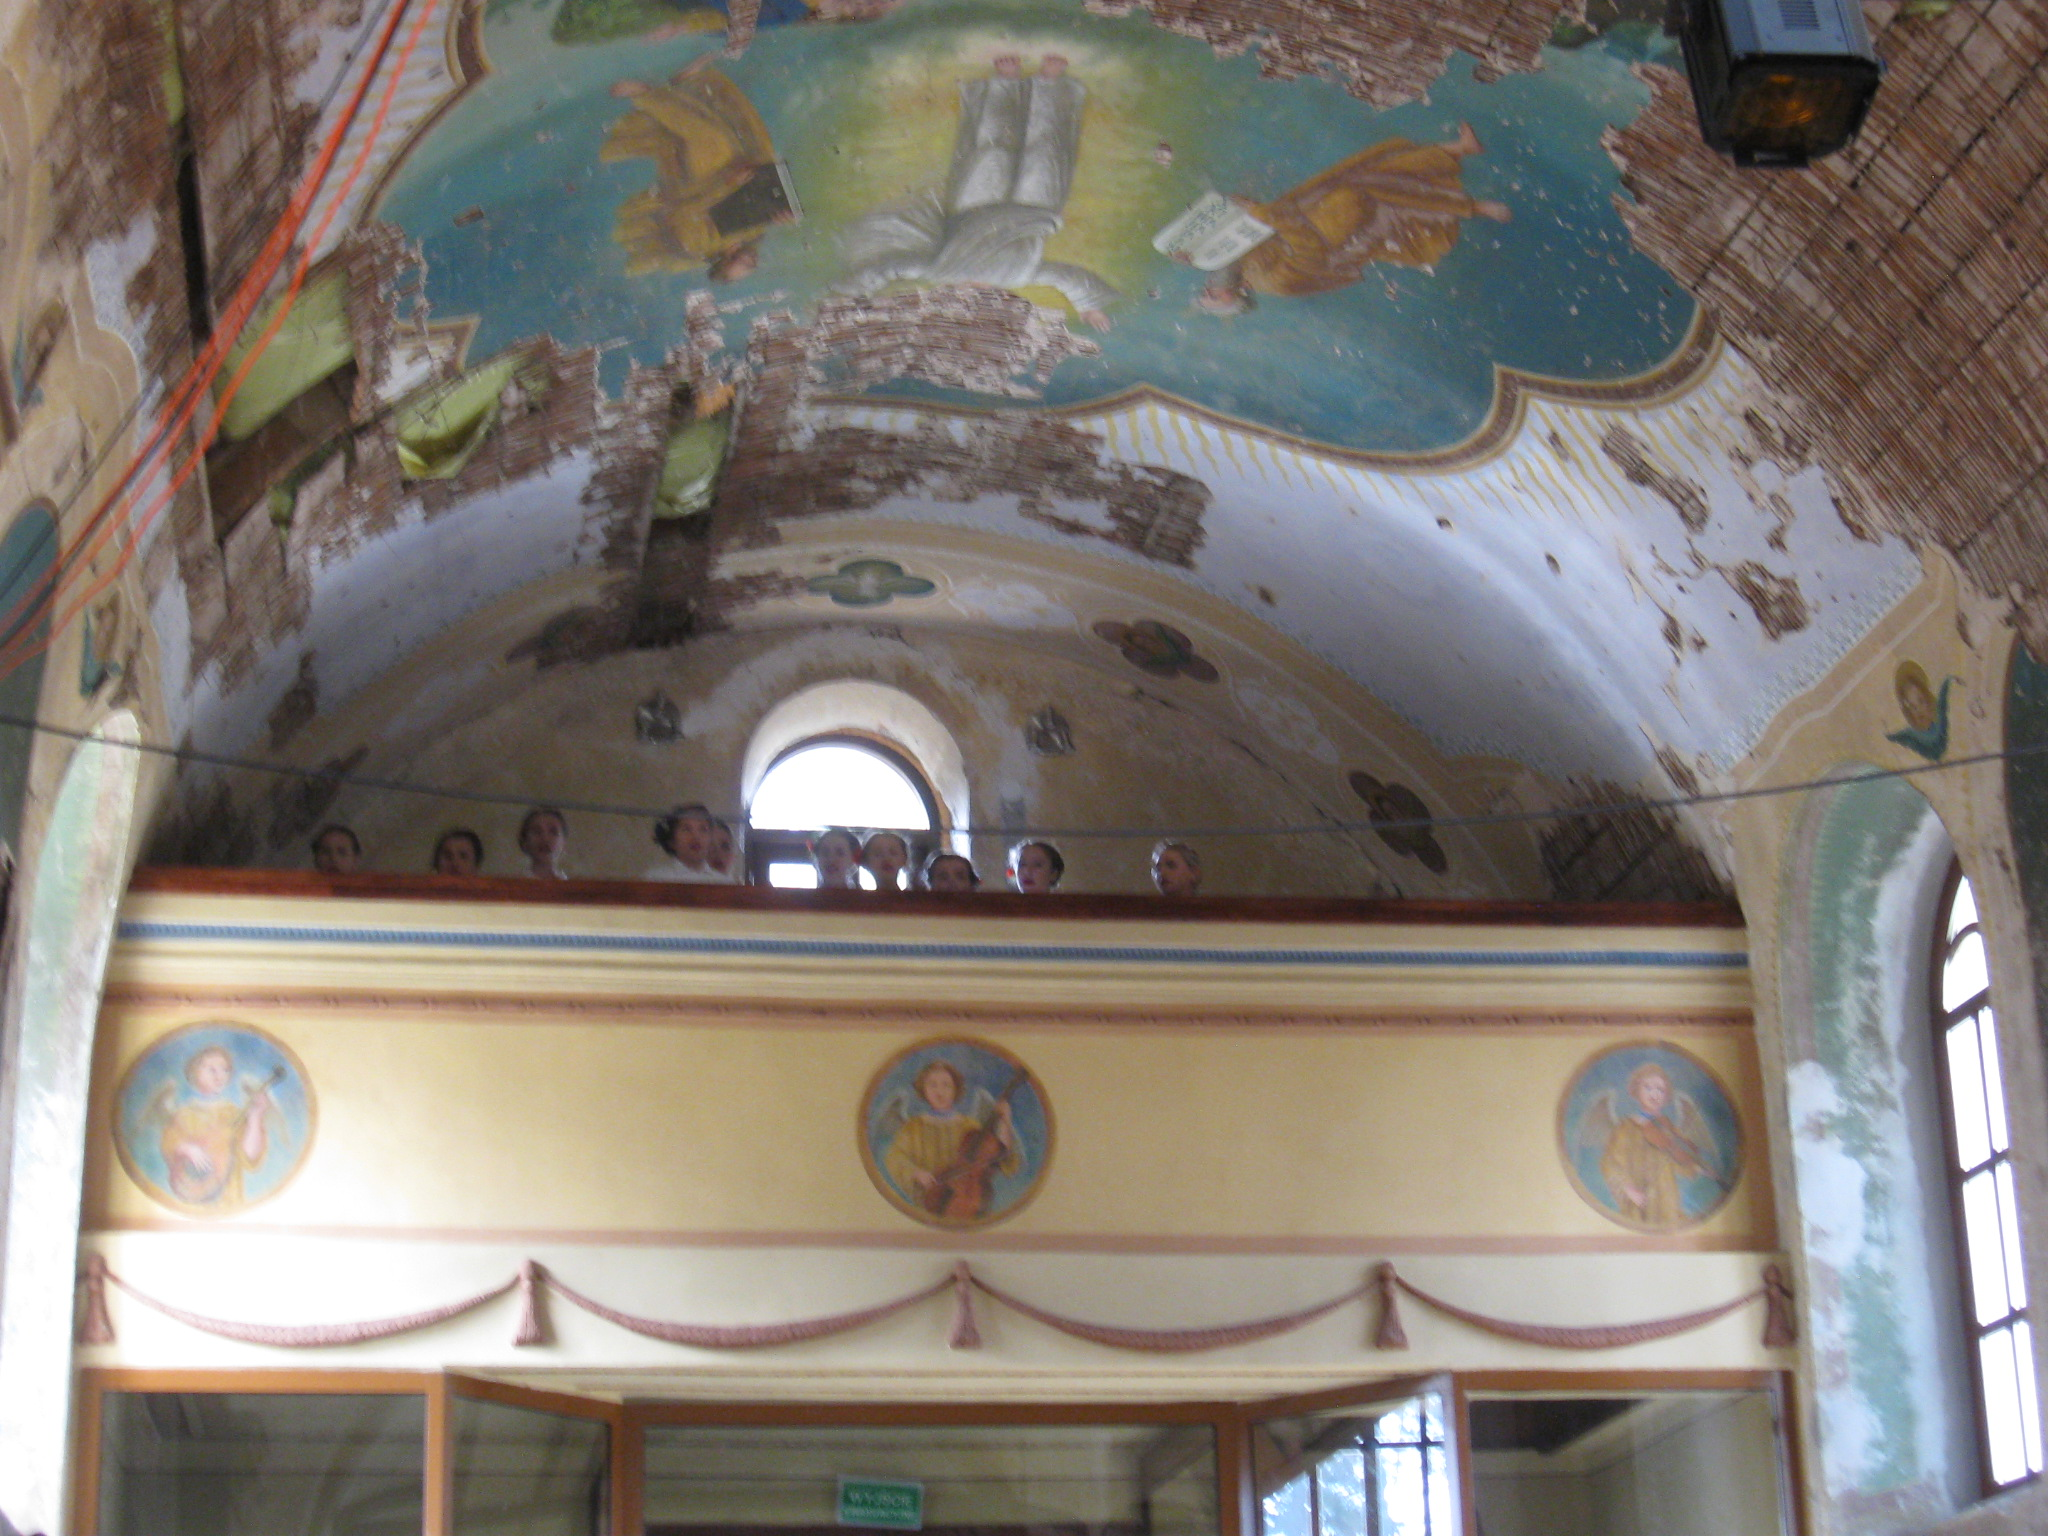 Concert and exhibition centre in former Orthodox church in Narol, Subcarpathian voivodeship - photo 2.jpg